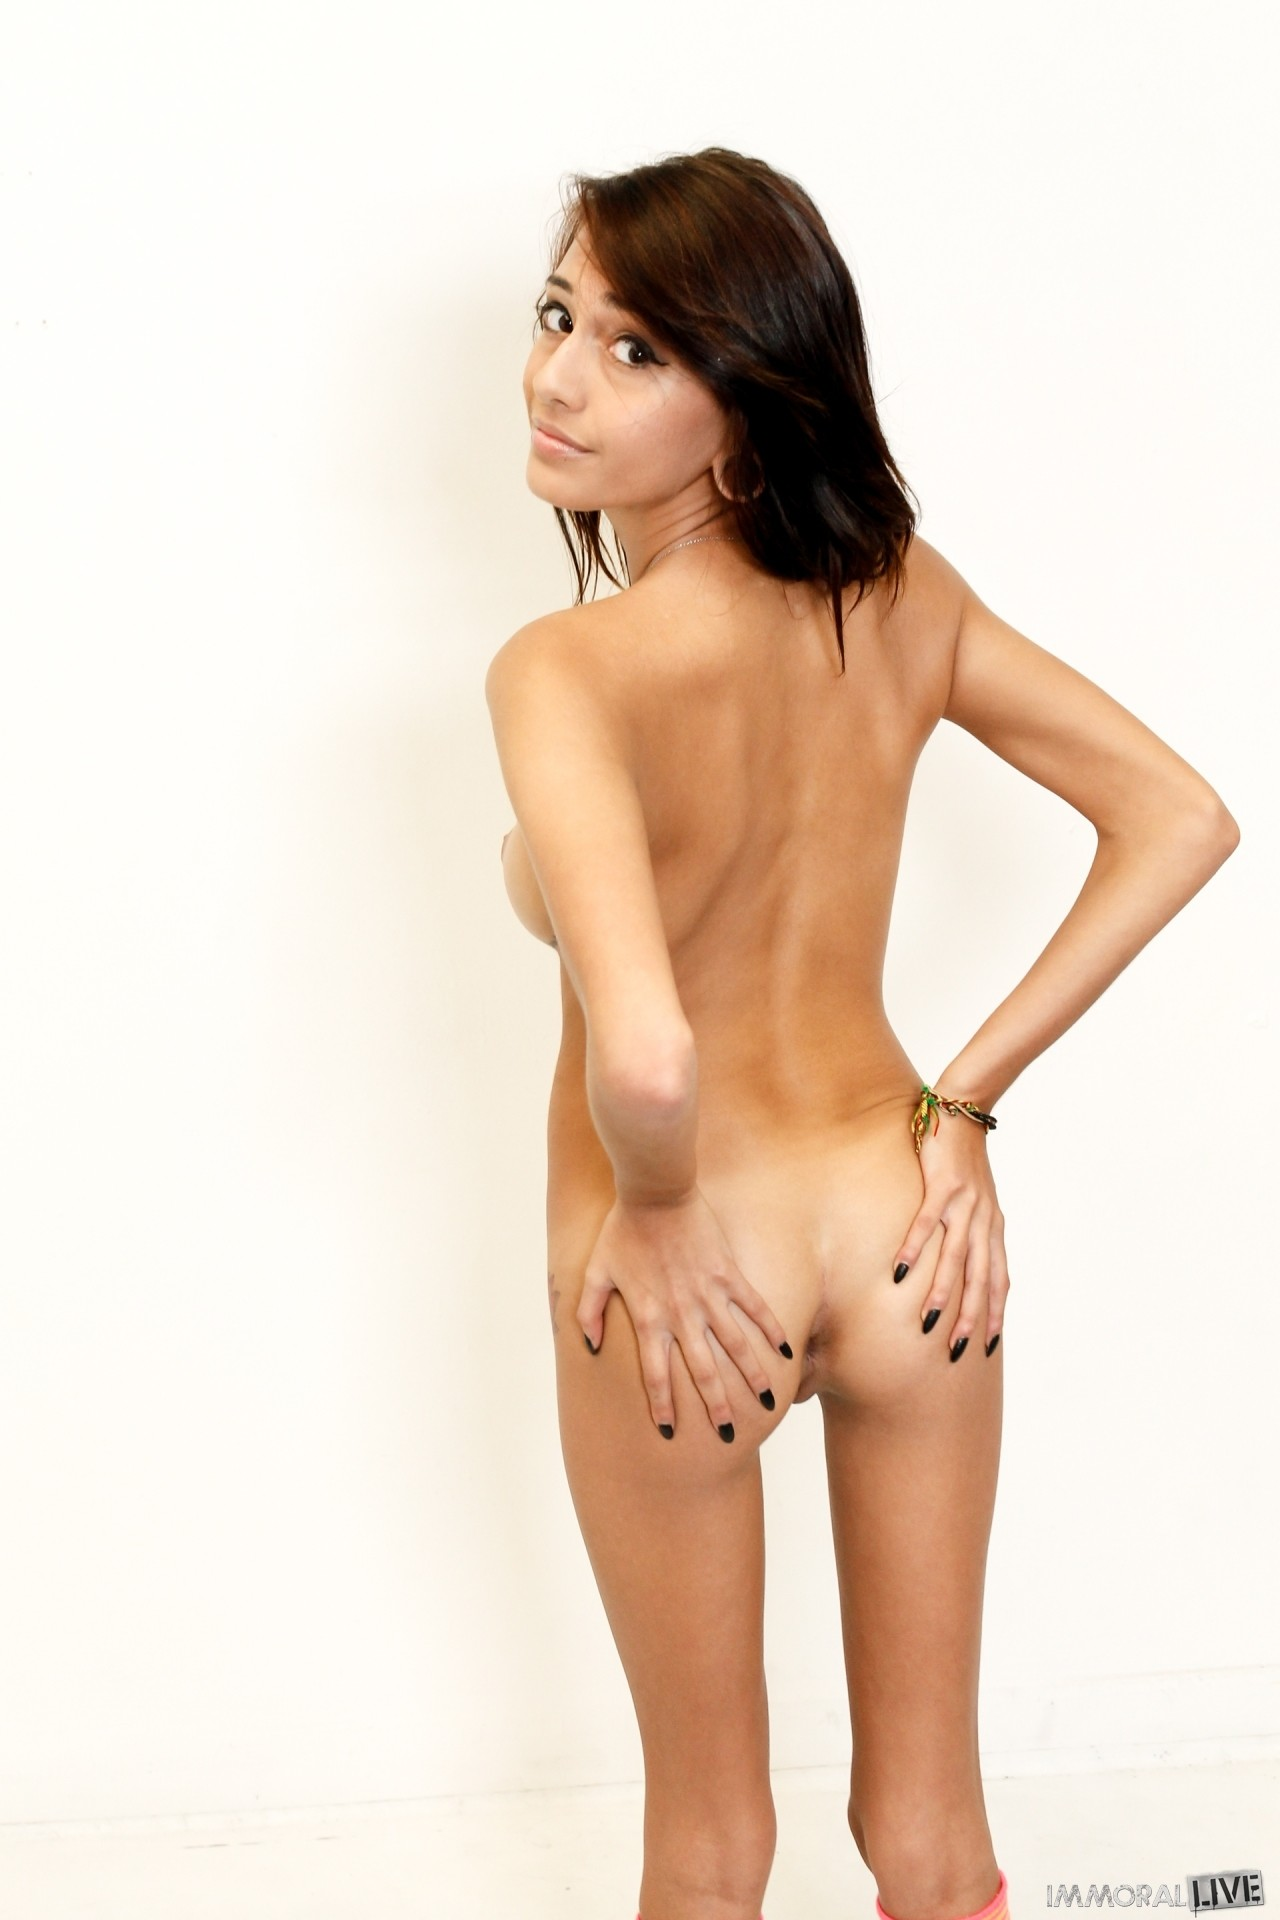 Janice griffith immoral live